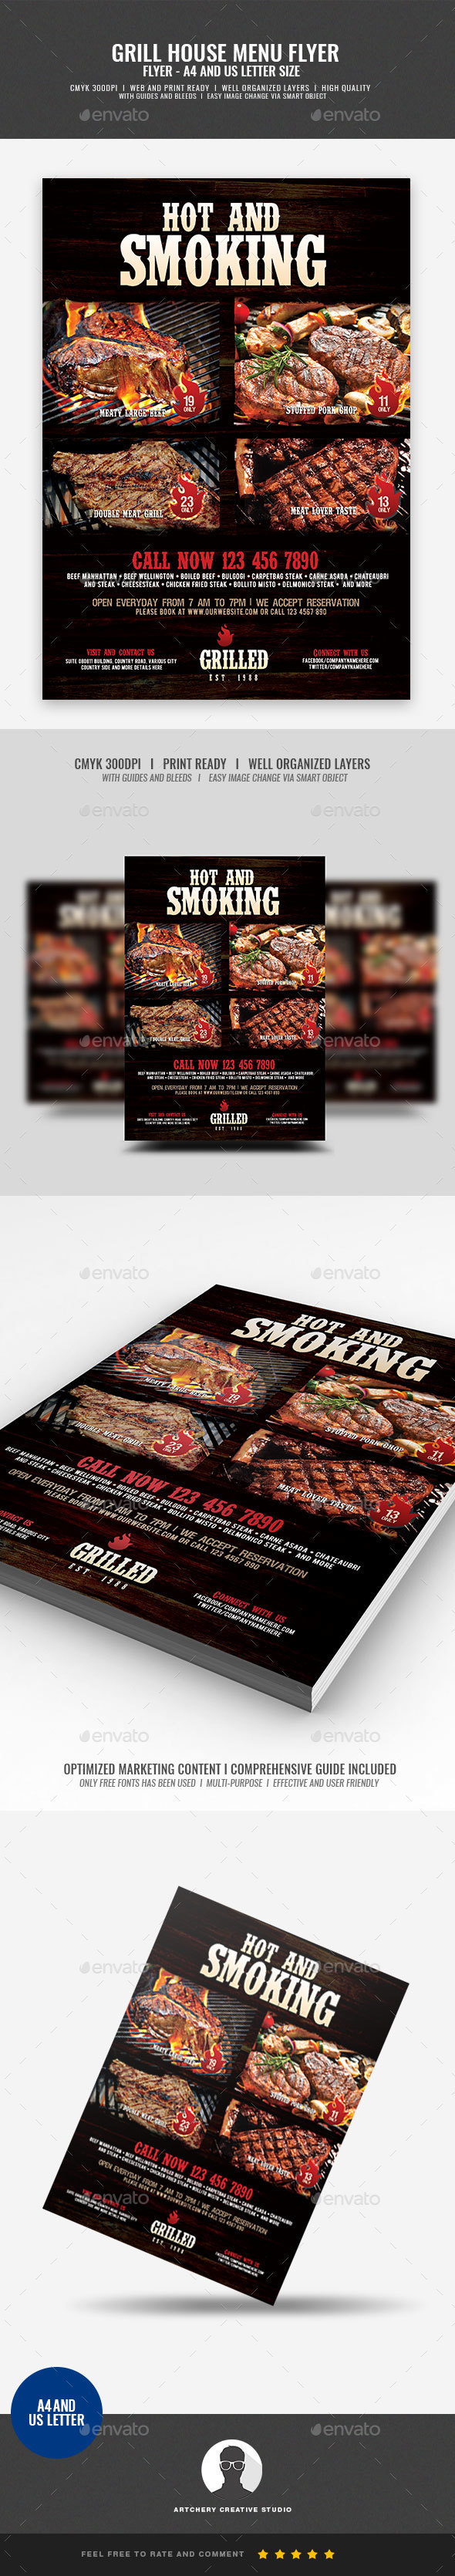 Barbecue and Steak House Flyer - Restaurant Flyers